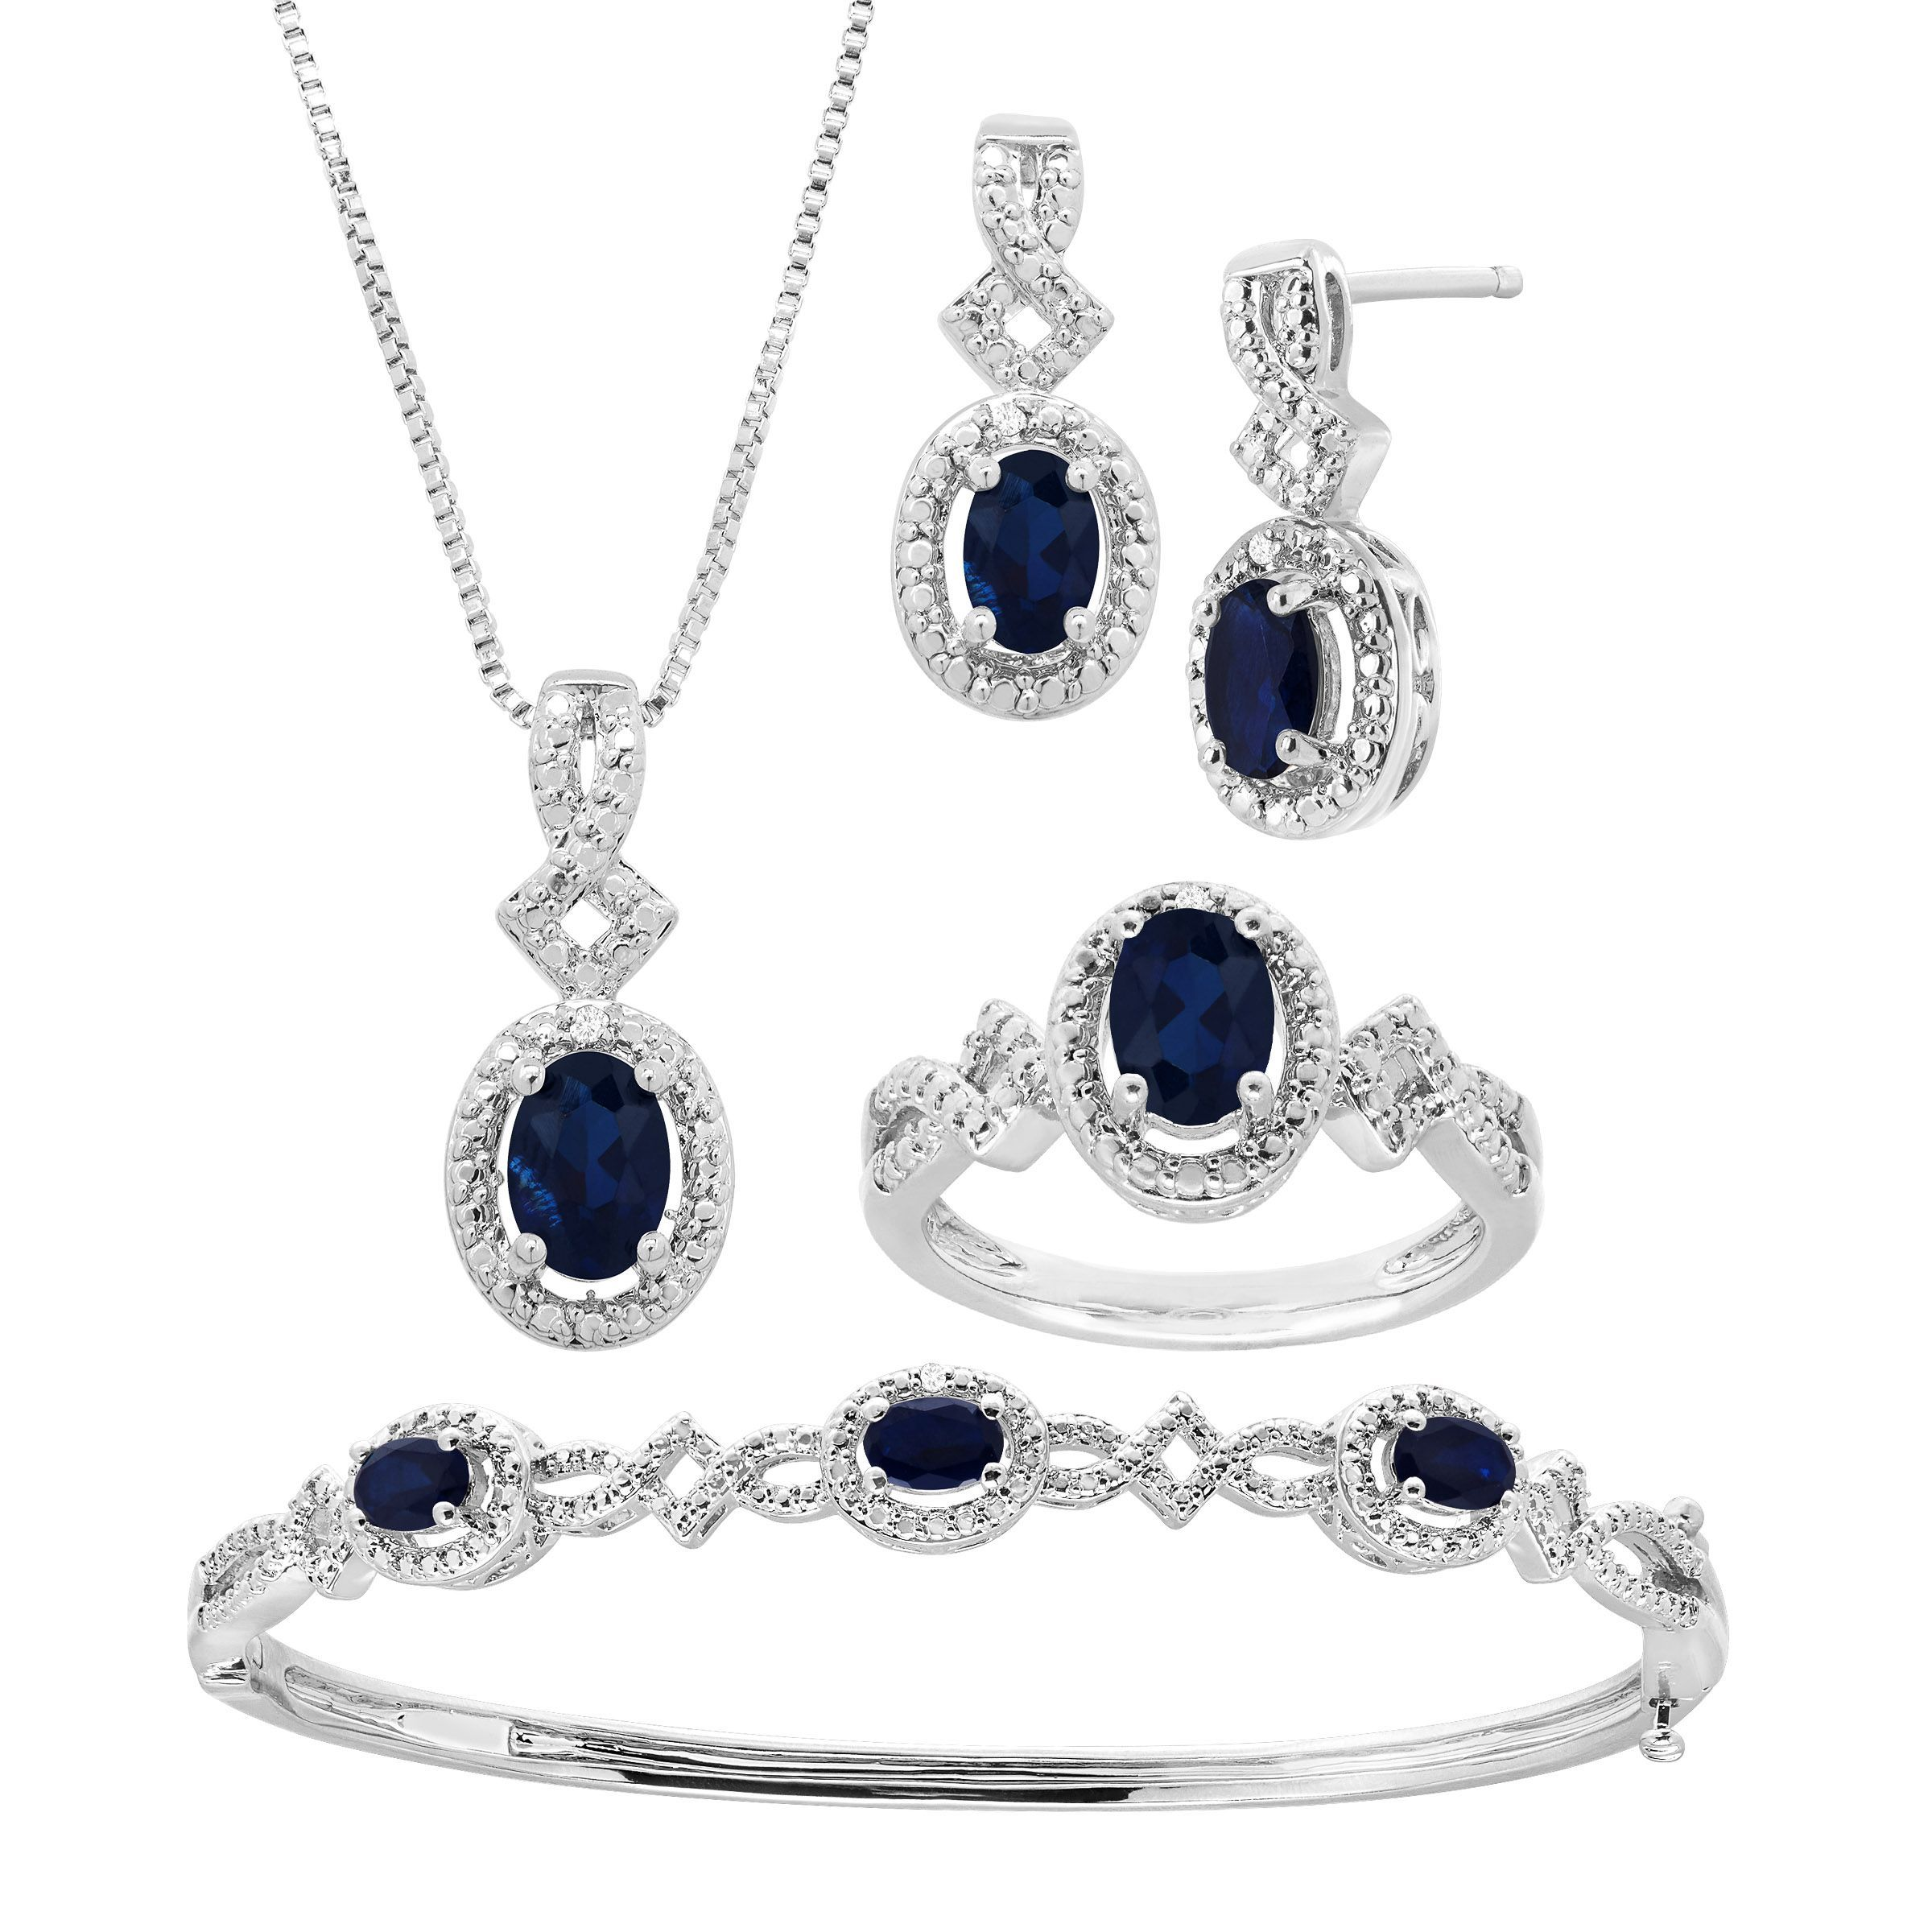 5 Ct Created Sapphire 4 Piece Jewelry Set With Diamonds In